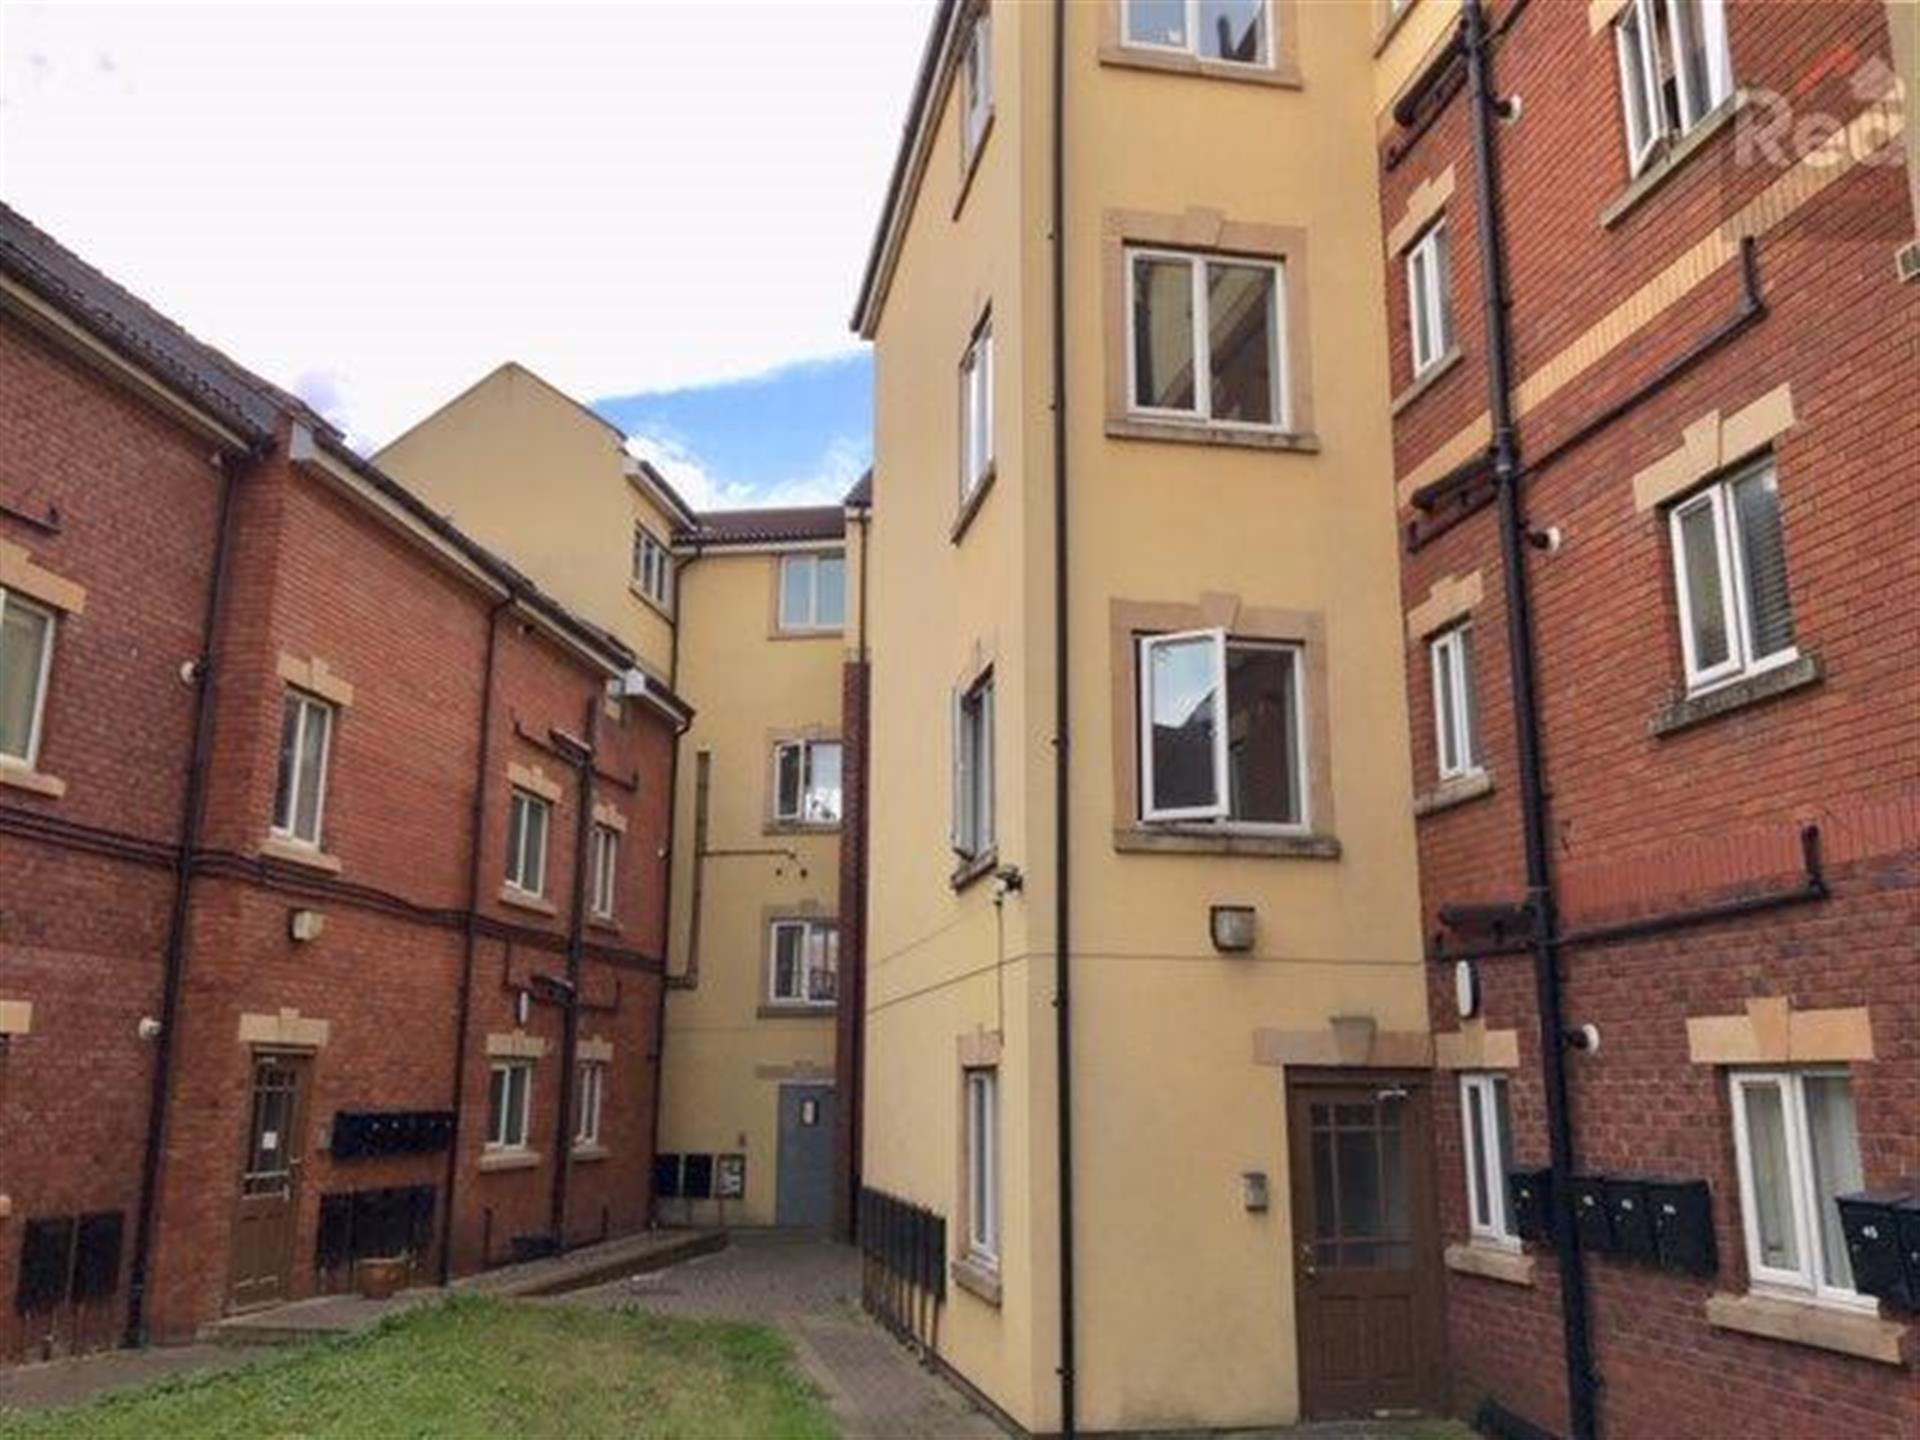 2 bedroom flat flat / apartment To Let in Tindale Crescent, Bishop Auckland - Main Image.